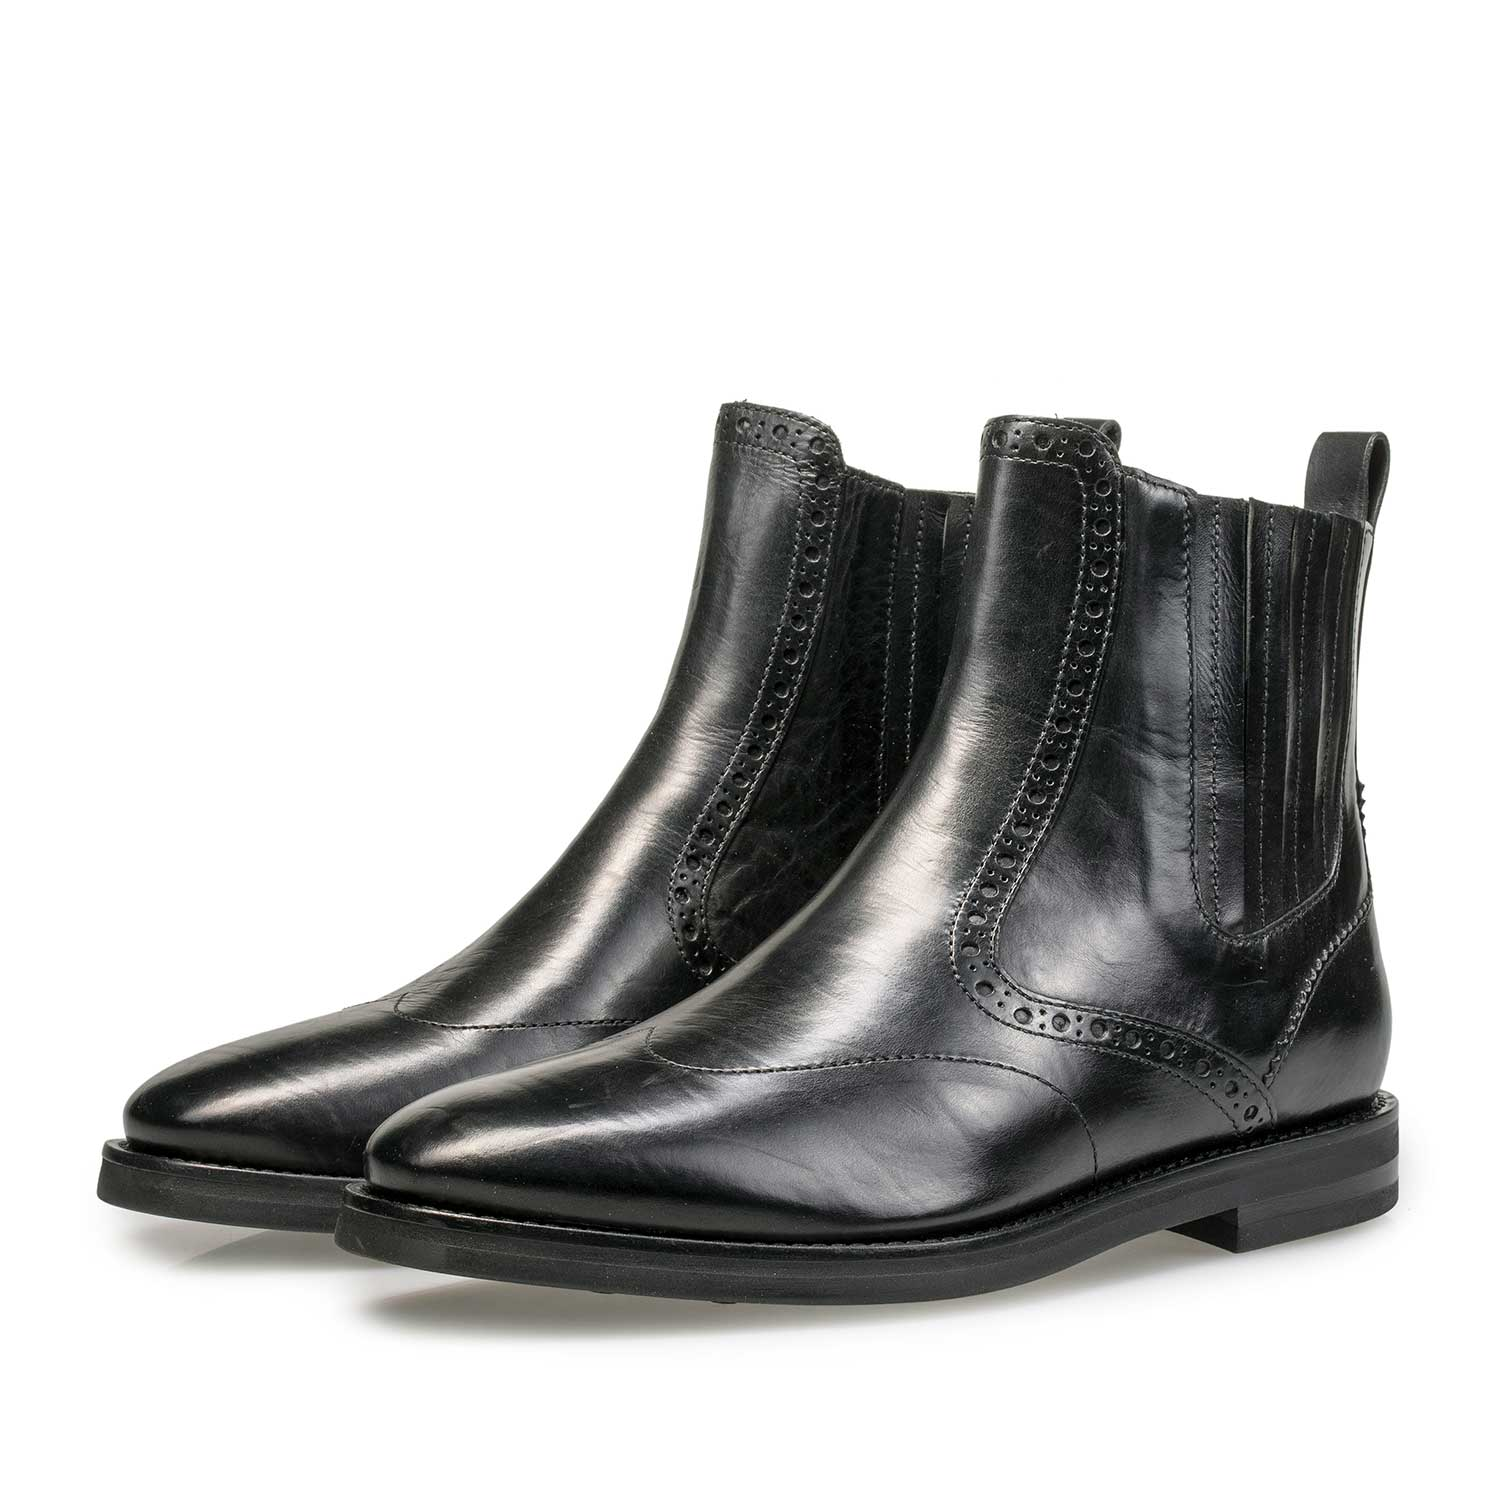 85604/02 - Black calf leather Chelsea boot with brogue details